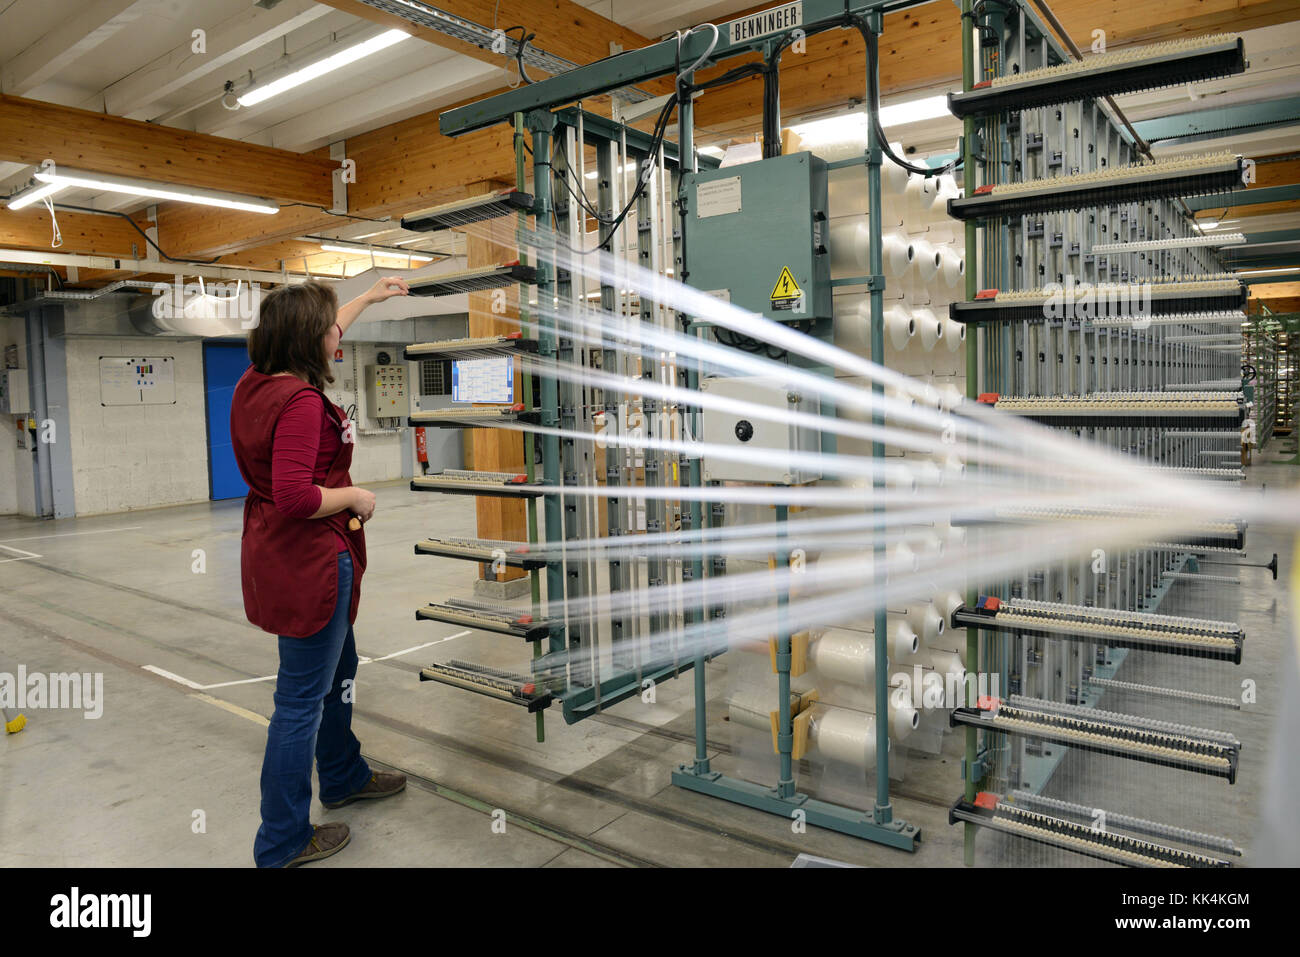 Bussieres (central-eastern France): warping in the premises of the weaving factory Ateliers Tissage de Bussieres - Stock Image